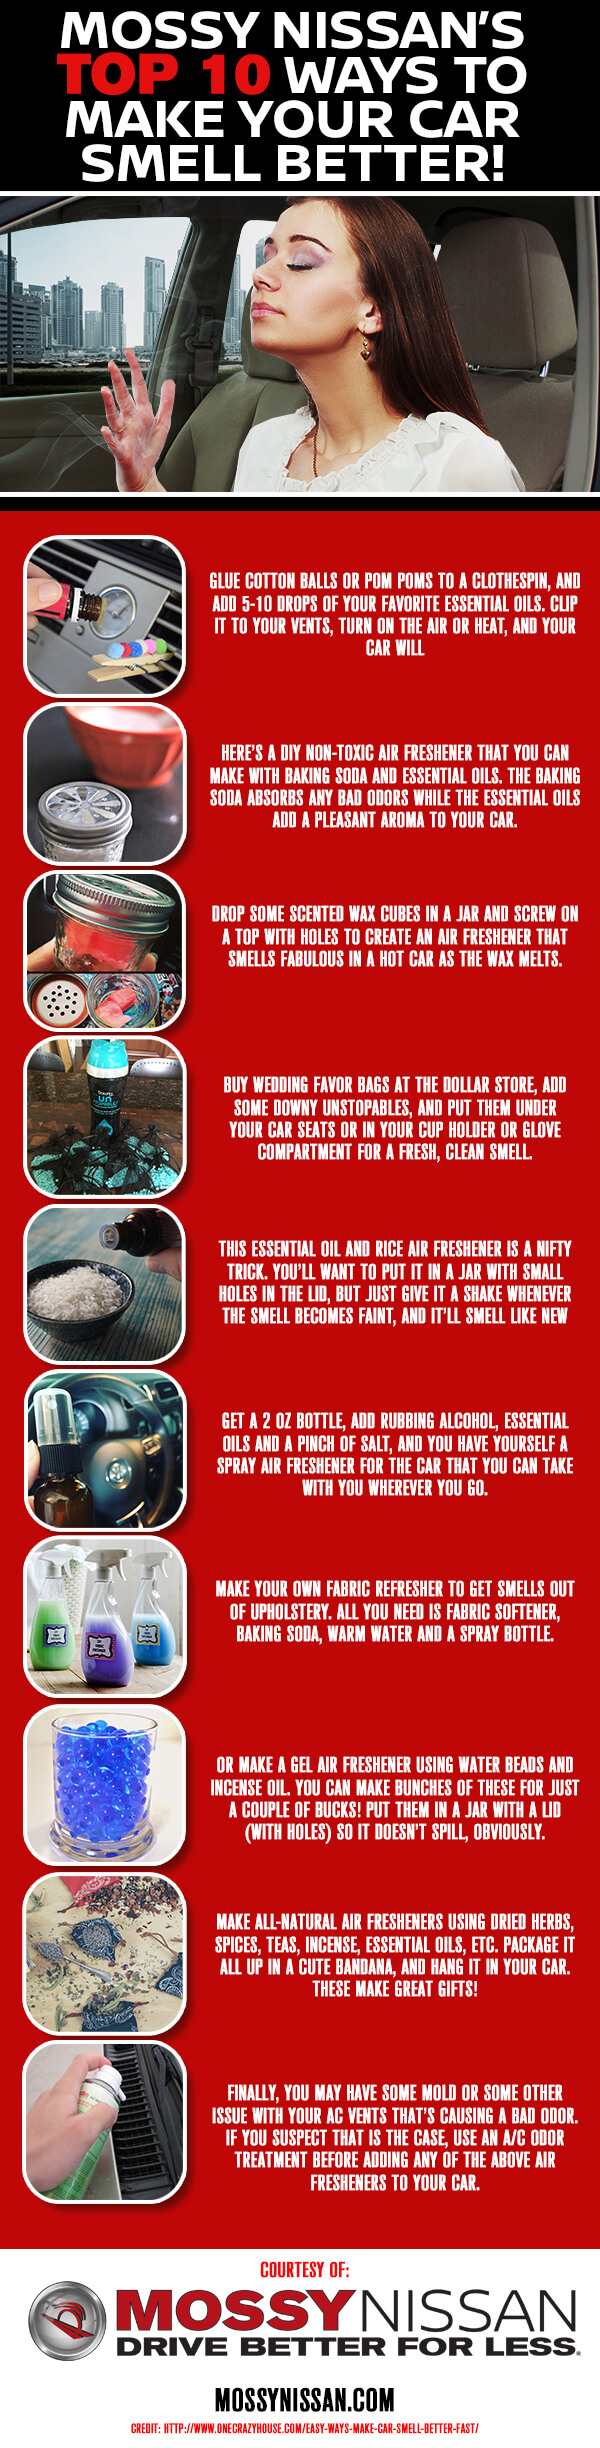 Mossy Nissan Poway >> Top 10 Ways to Make Your Car Smell Better! - Mossy Nissan